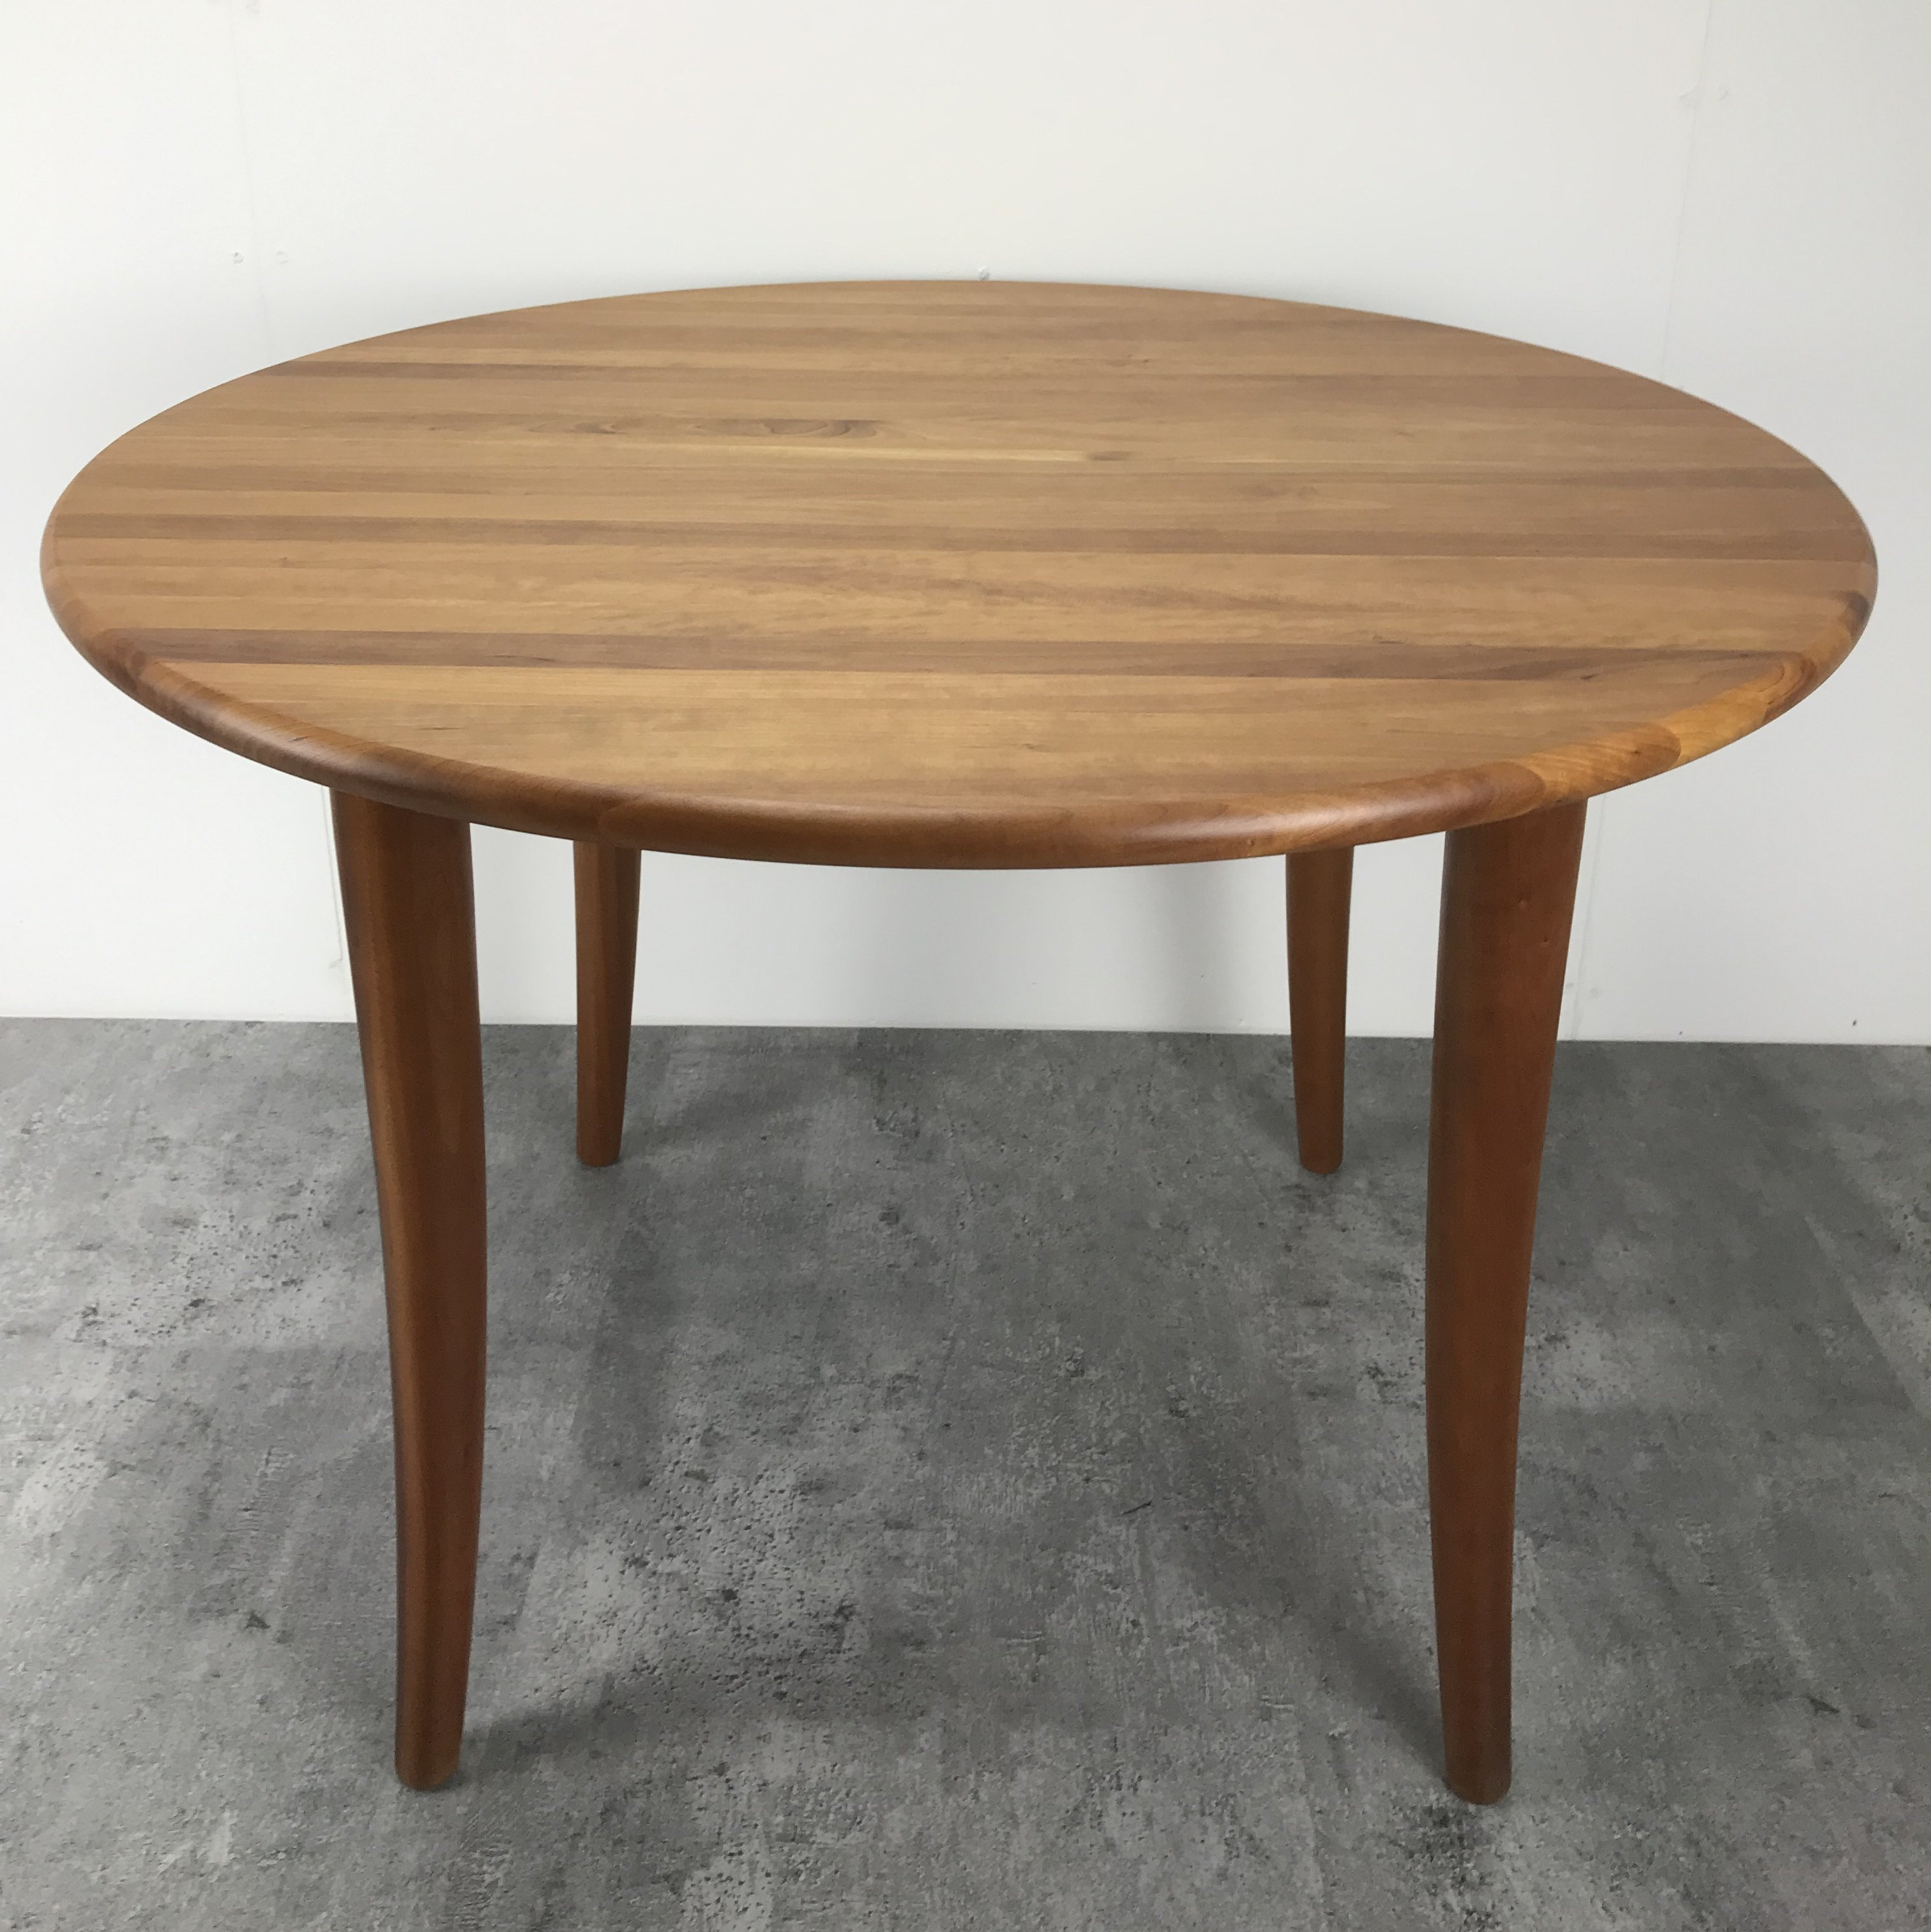 Round Teak Danish Dining Table With 4 Tapered Legs 126525